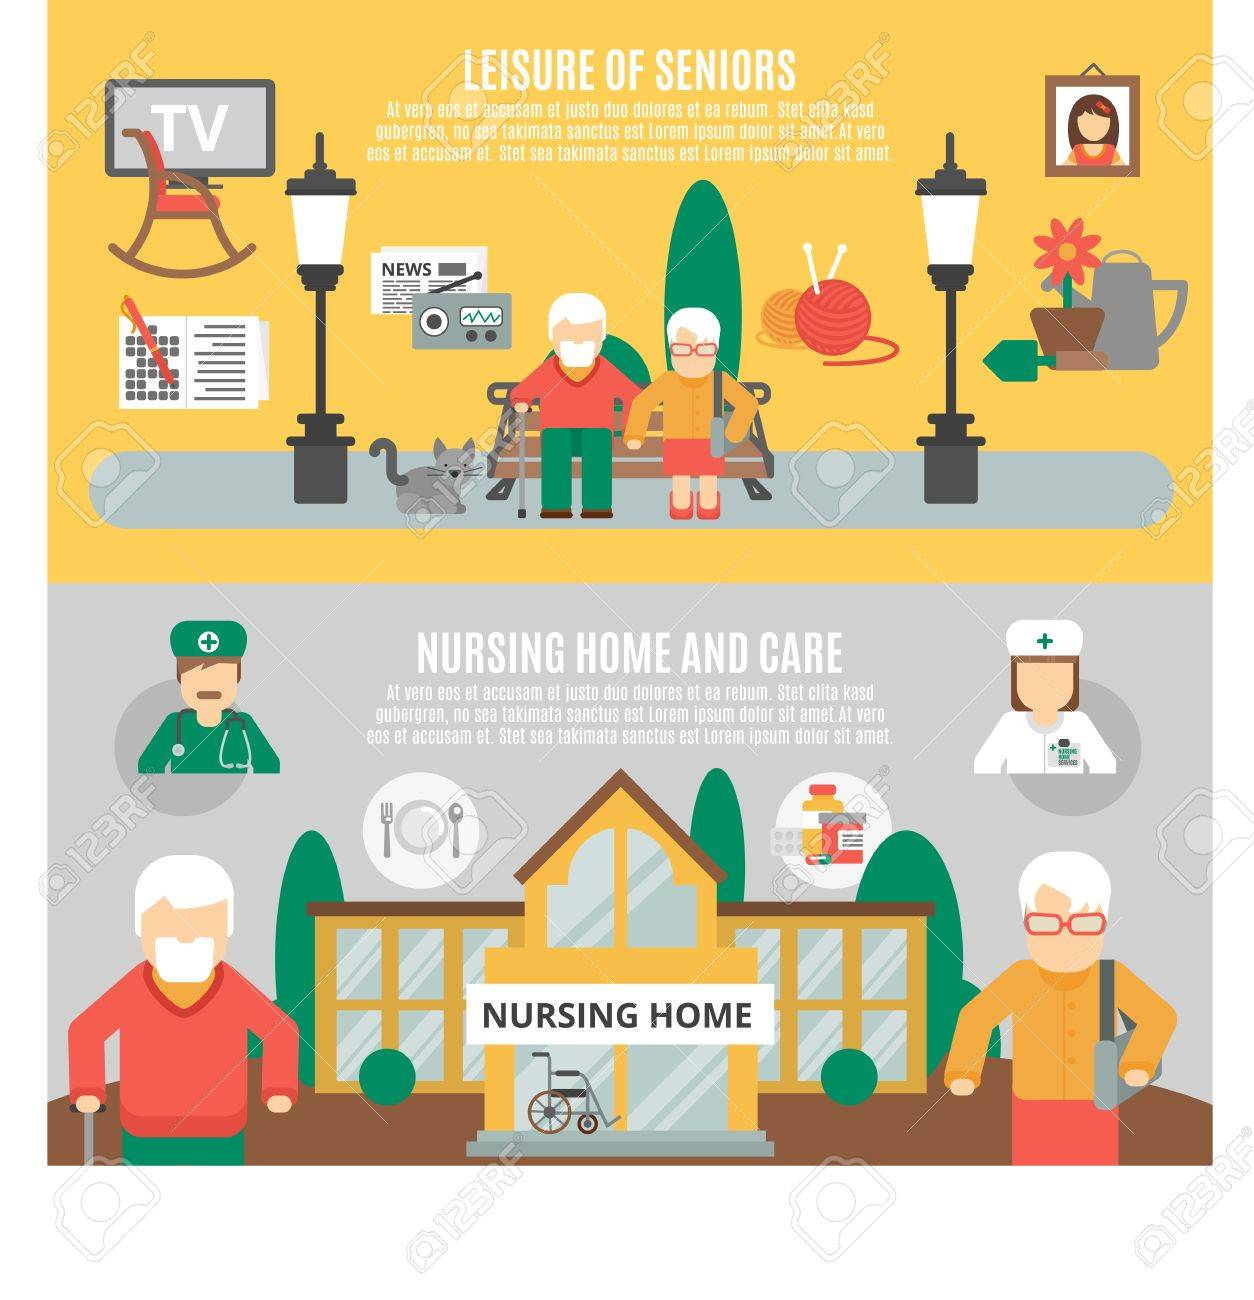 Horizontal flat banners presenting leisure of seniors and nursing home and care vector illustration - 52695115